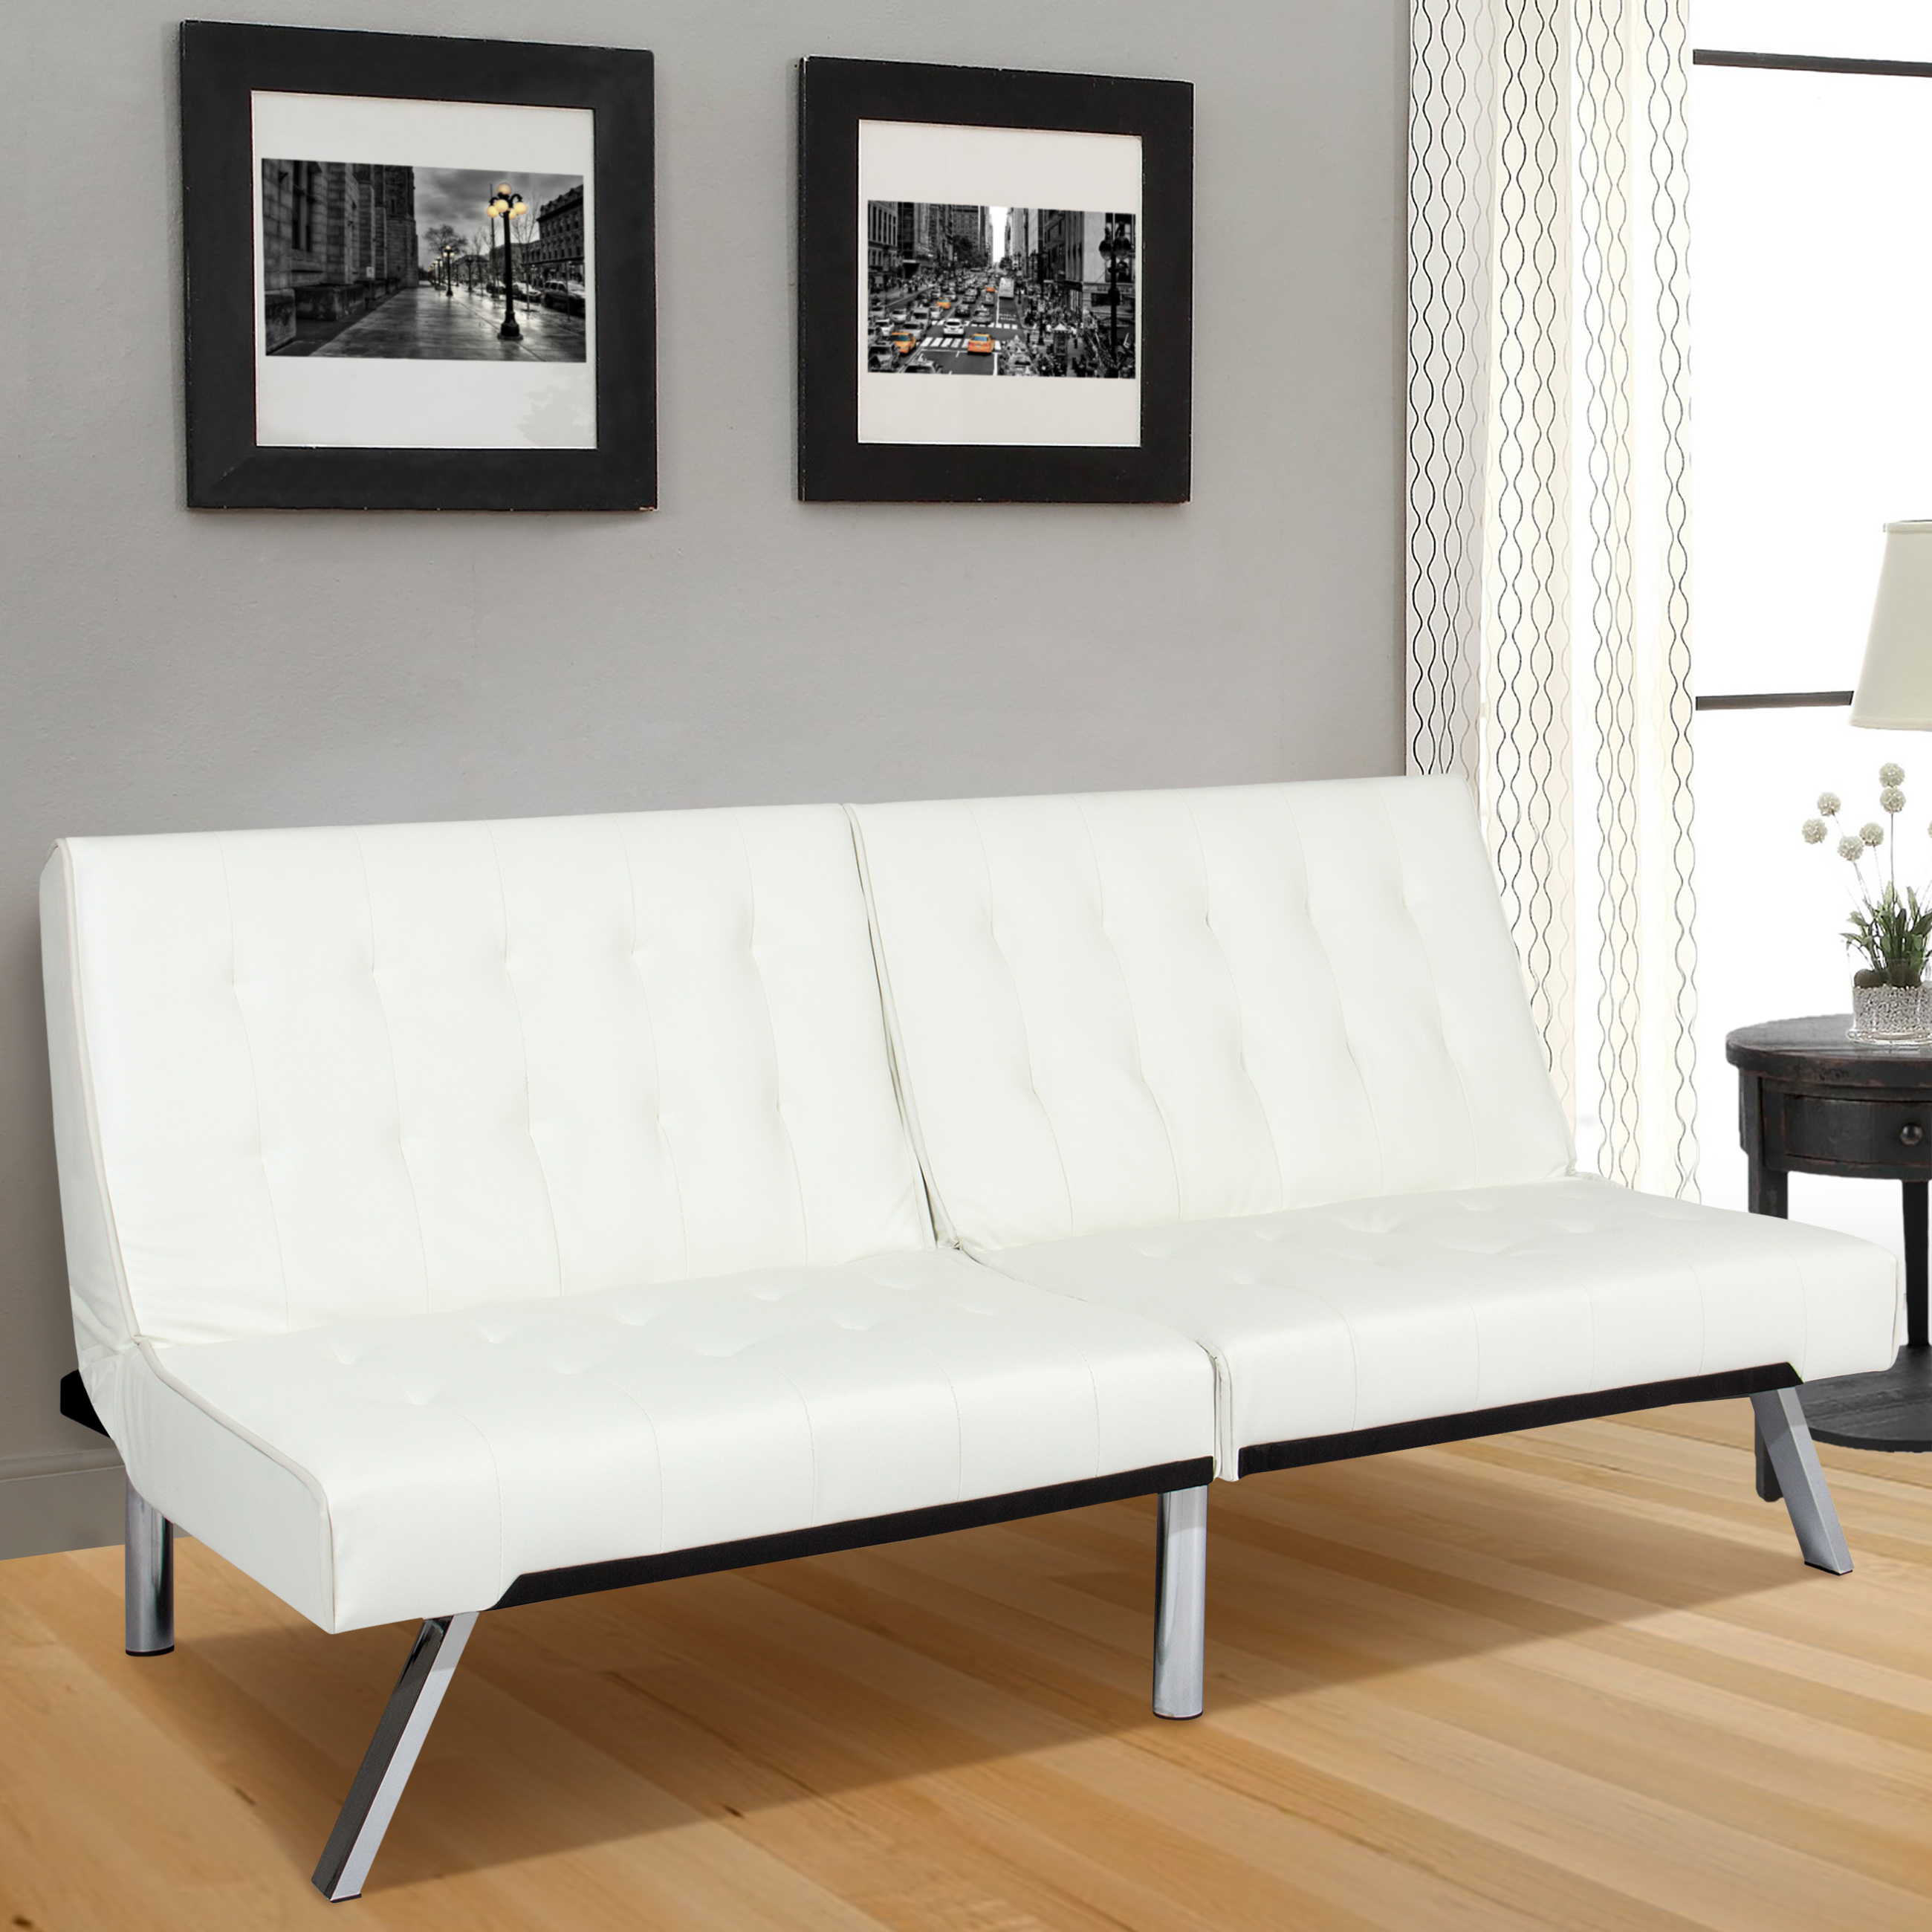 Best Choice Products Modern Faux Leather Futon Sofa Bed Couch Recliner  Lounger Sleeper W/ Chrome